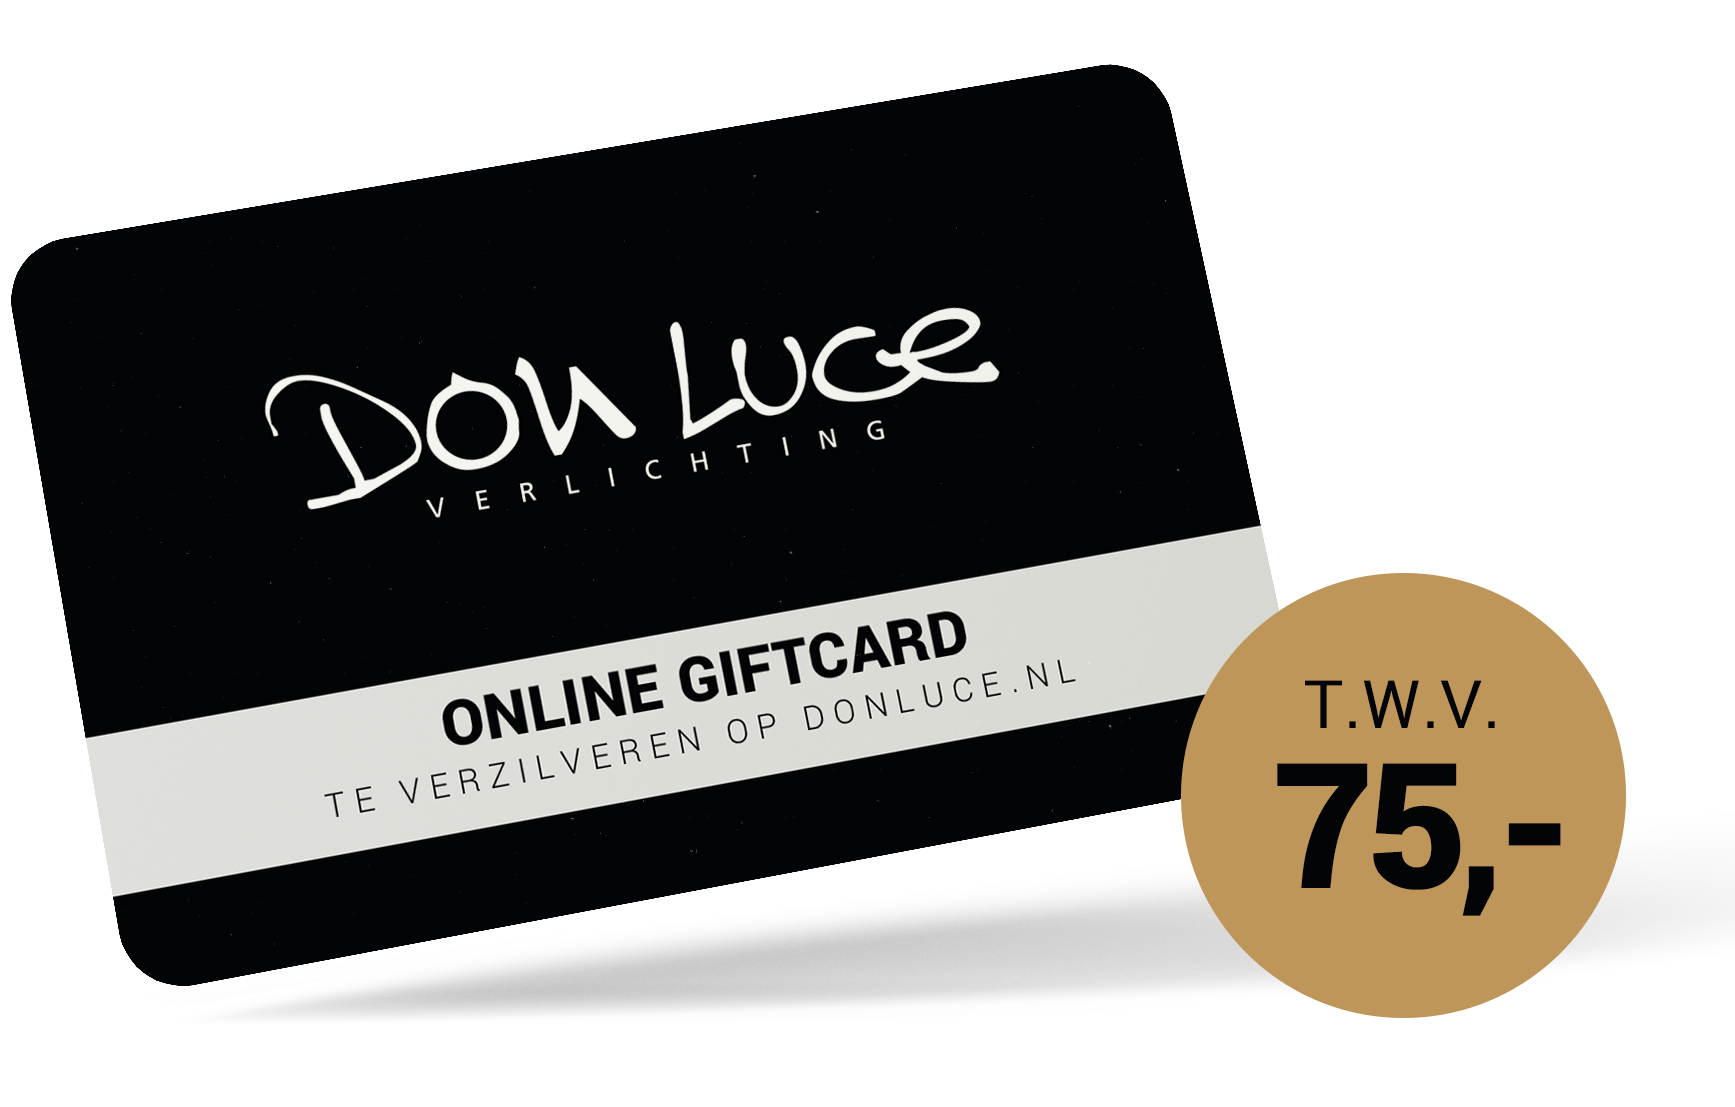 DonLuce Giftcard 75